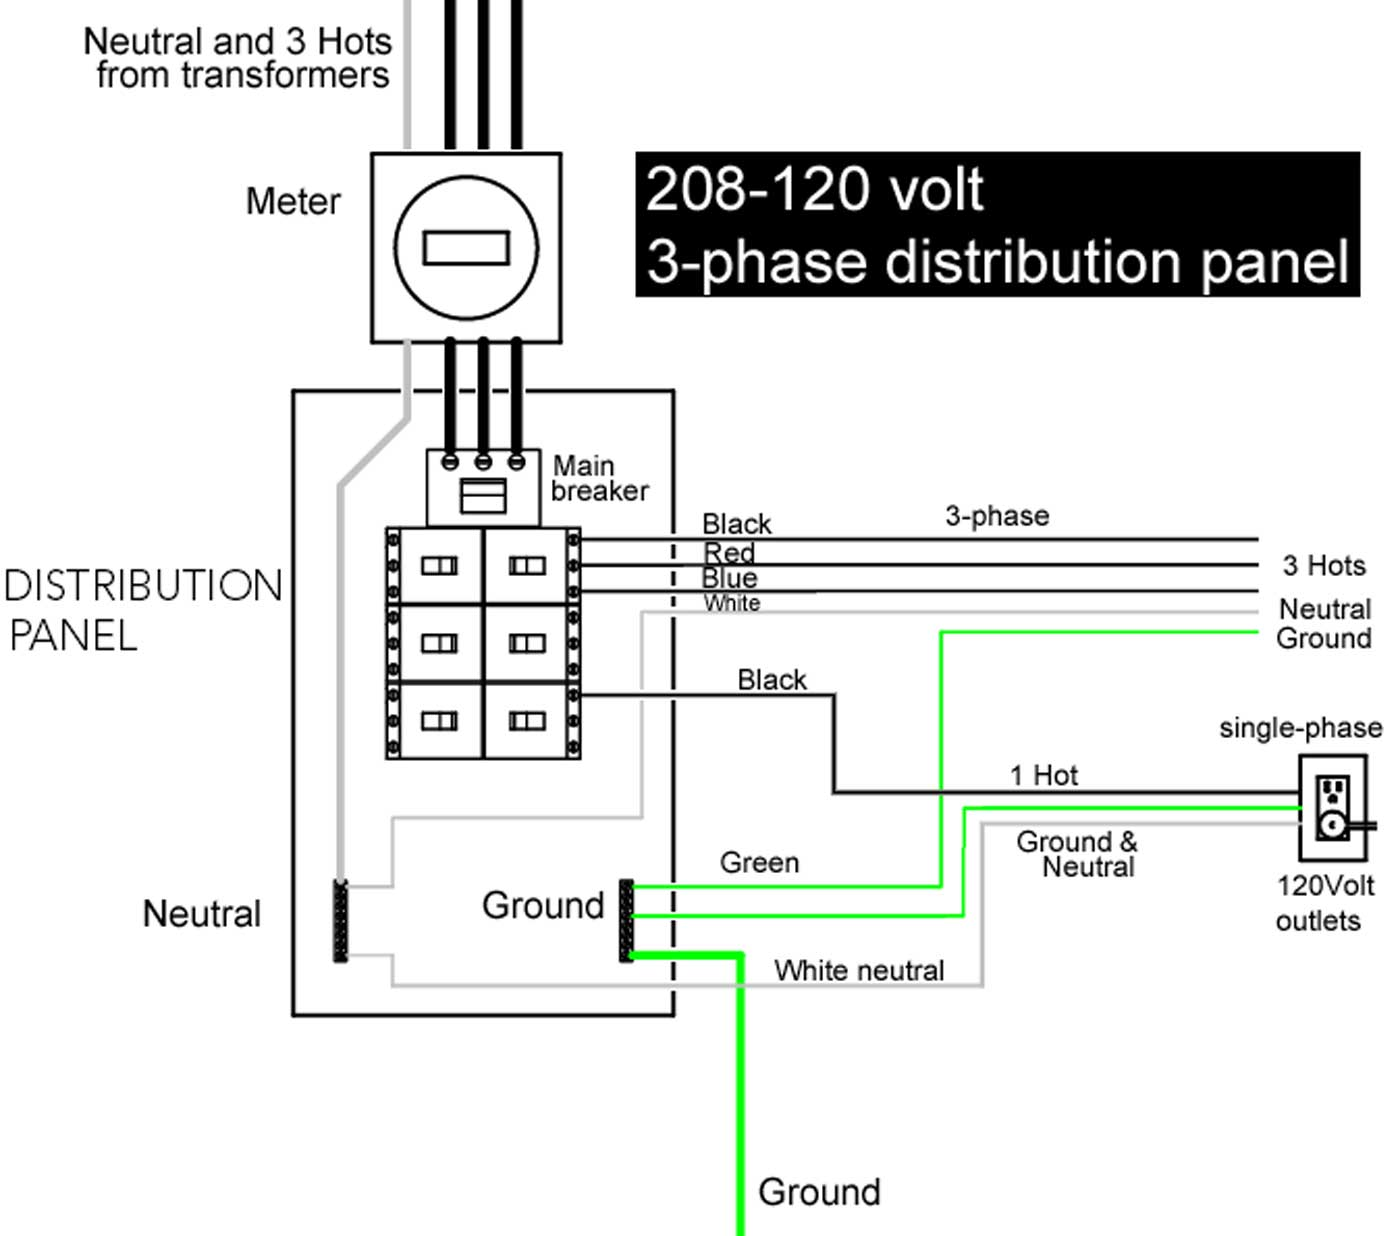 3 phase distribution panel how to wire 3 phase 3 phase heating element wiring diagram at readyjetset.co